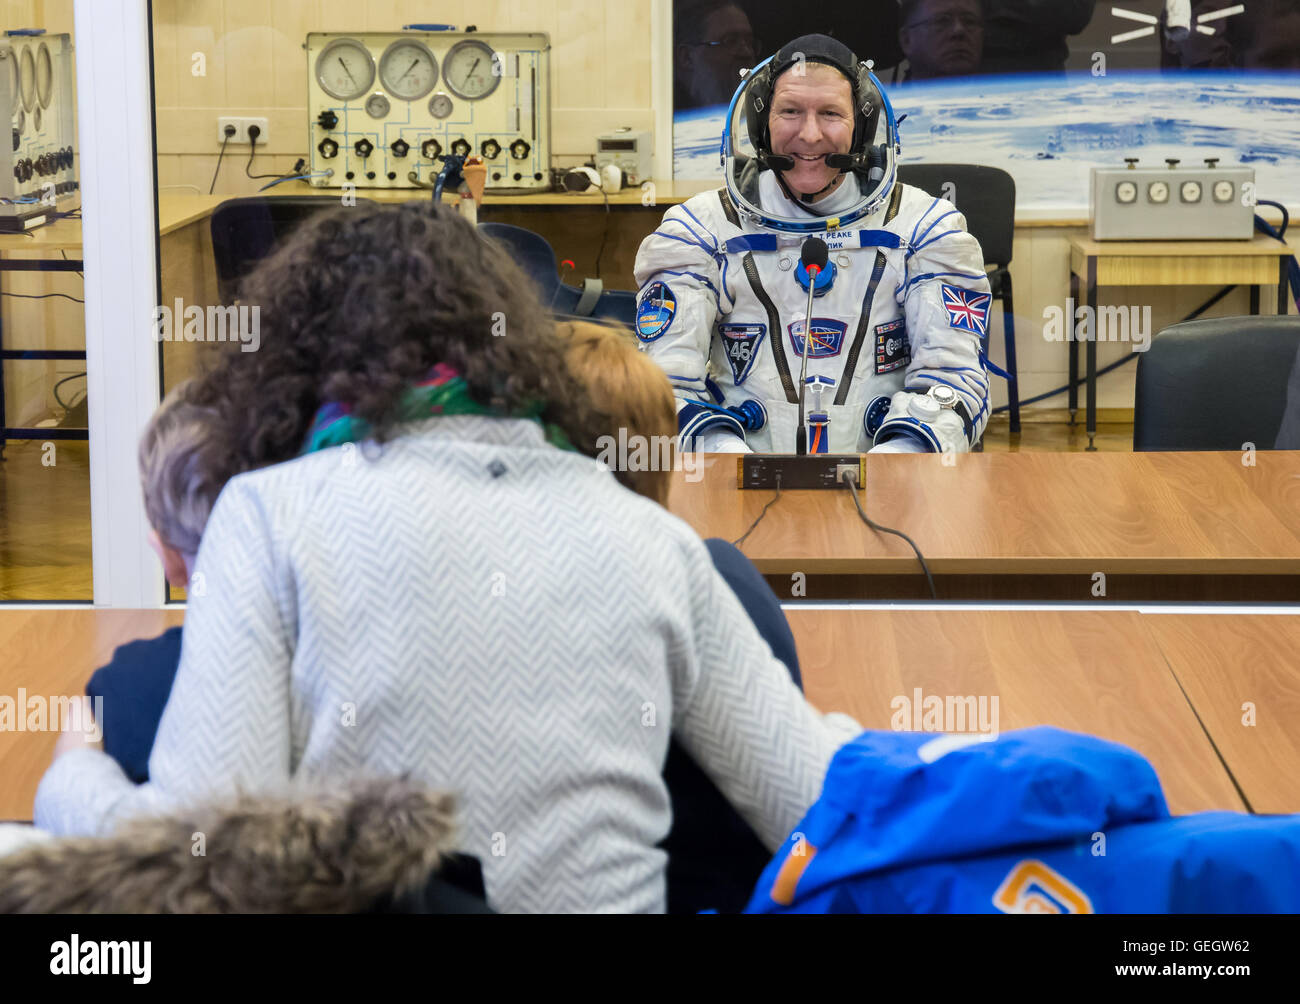 Expedition 46 Preflight  12150067 - Stock Image